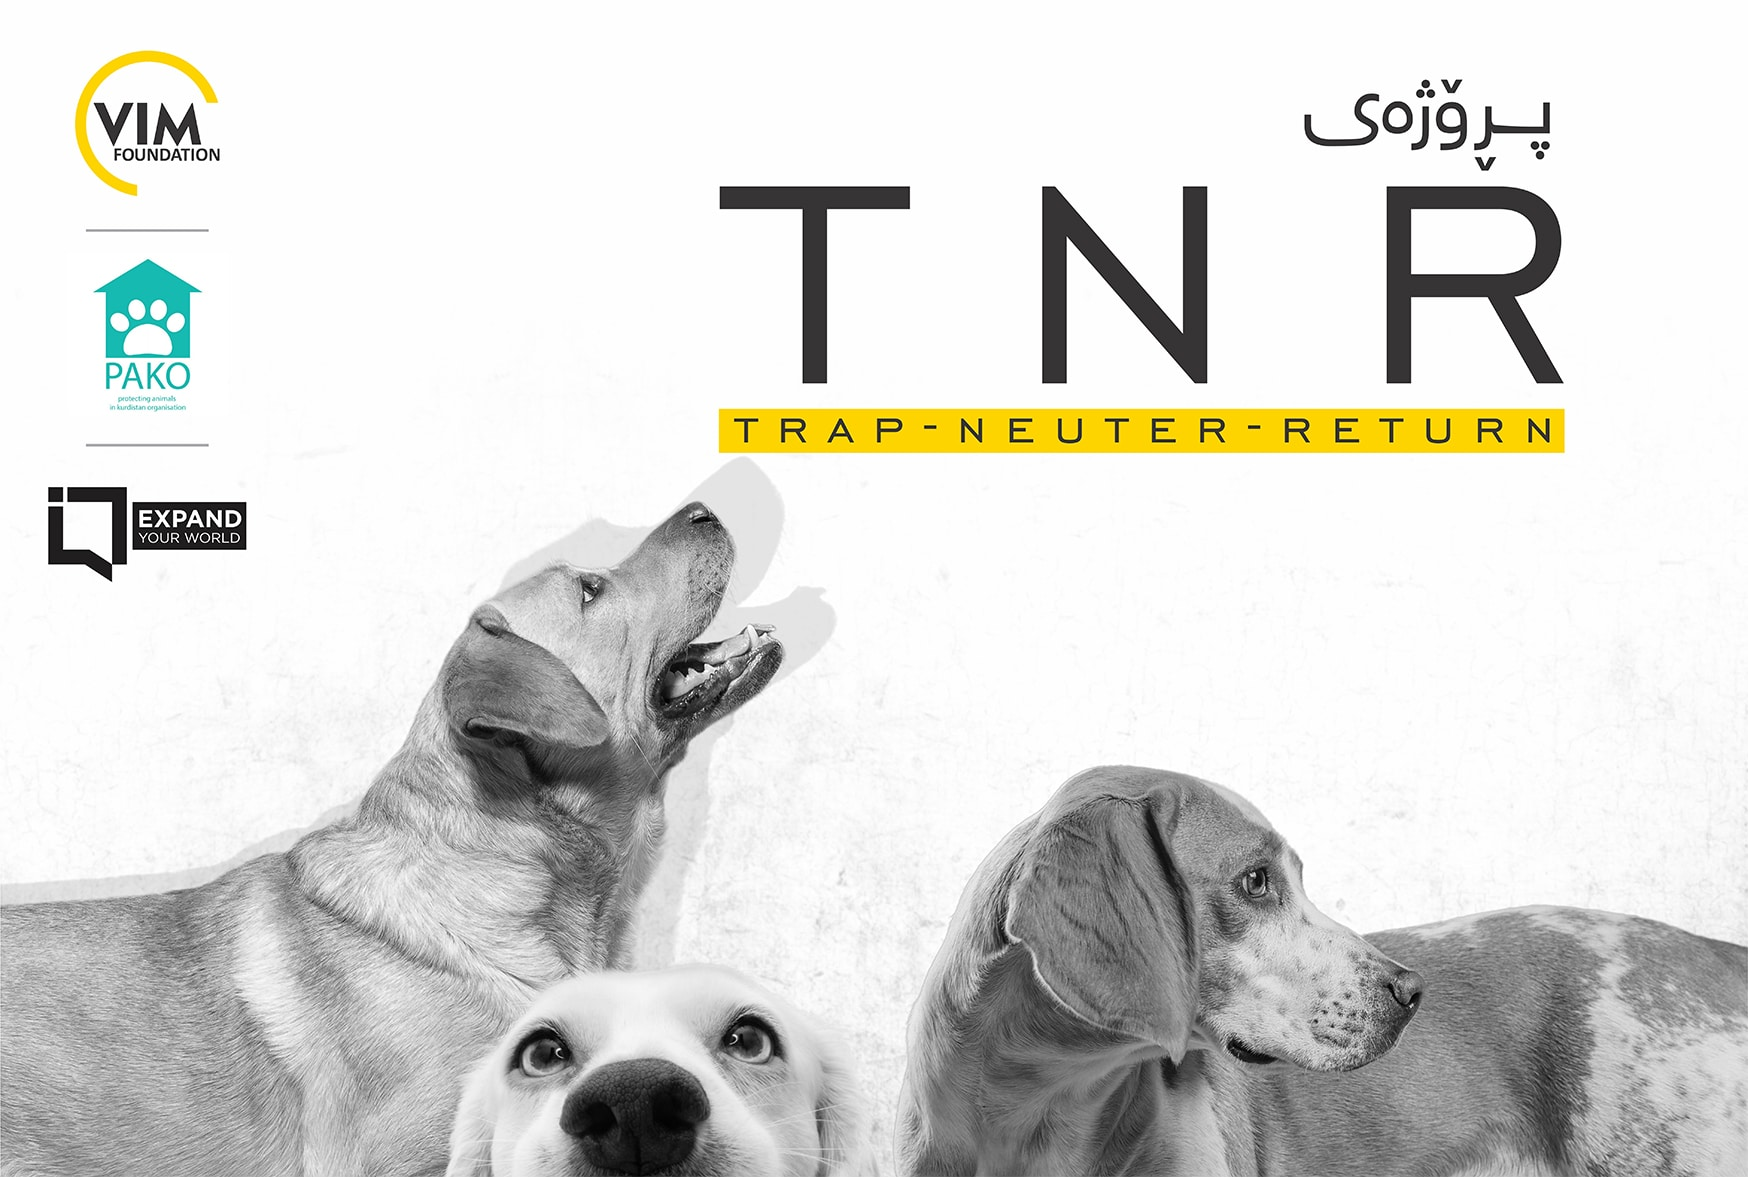 In collaboration with Pako Organization, Vim Foundation is announcing the (TNR) project, brief for Capture, Neuter, and Return.